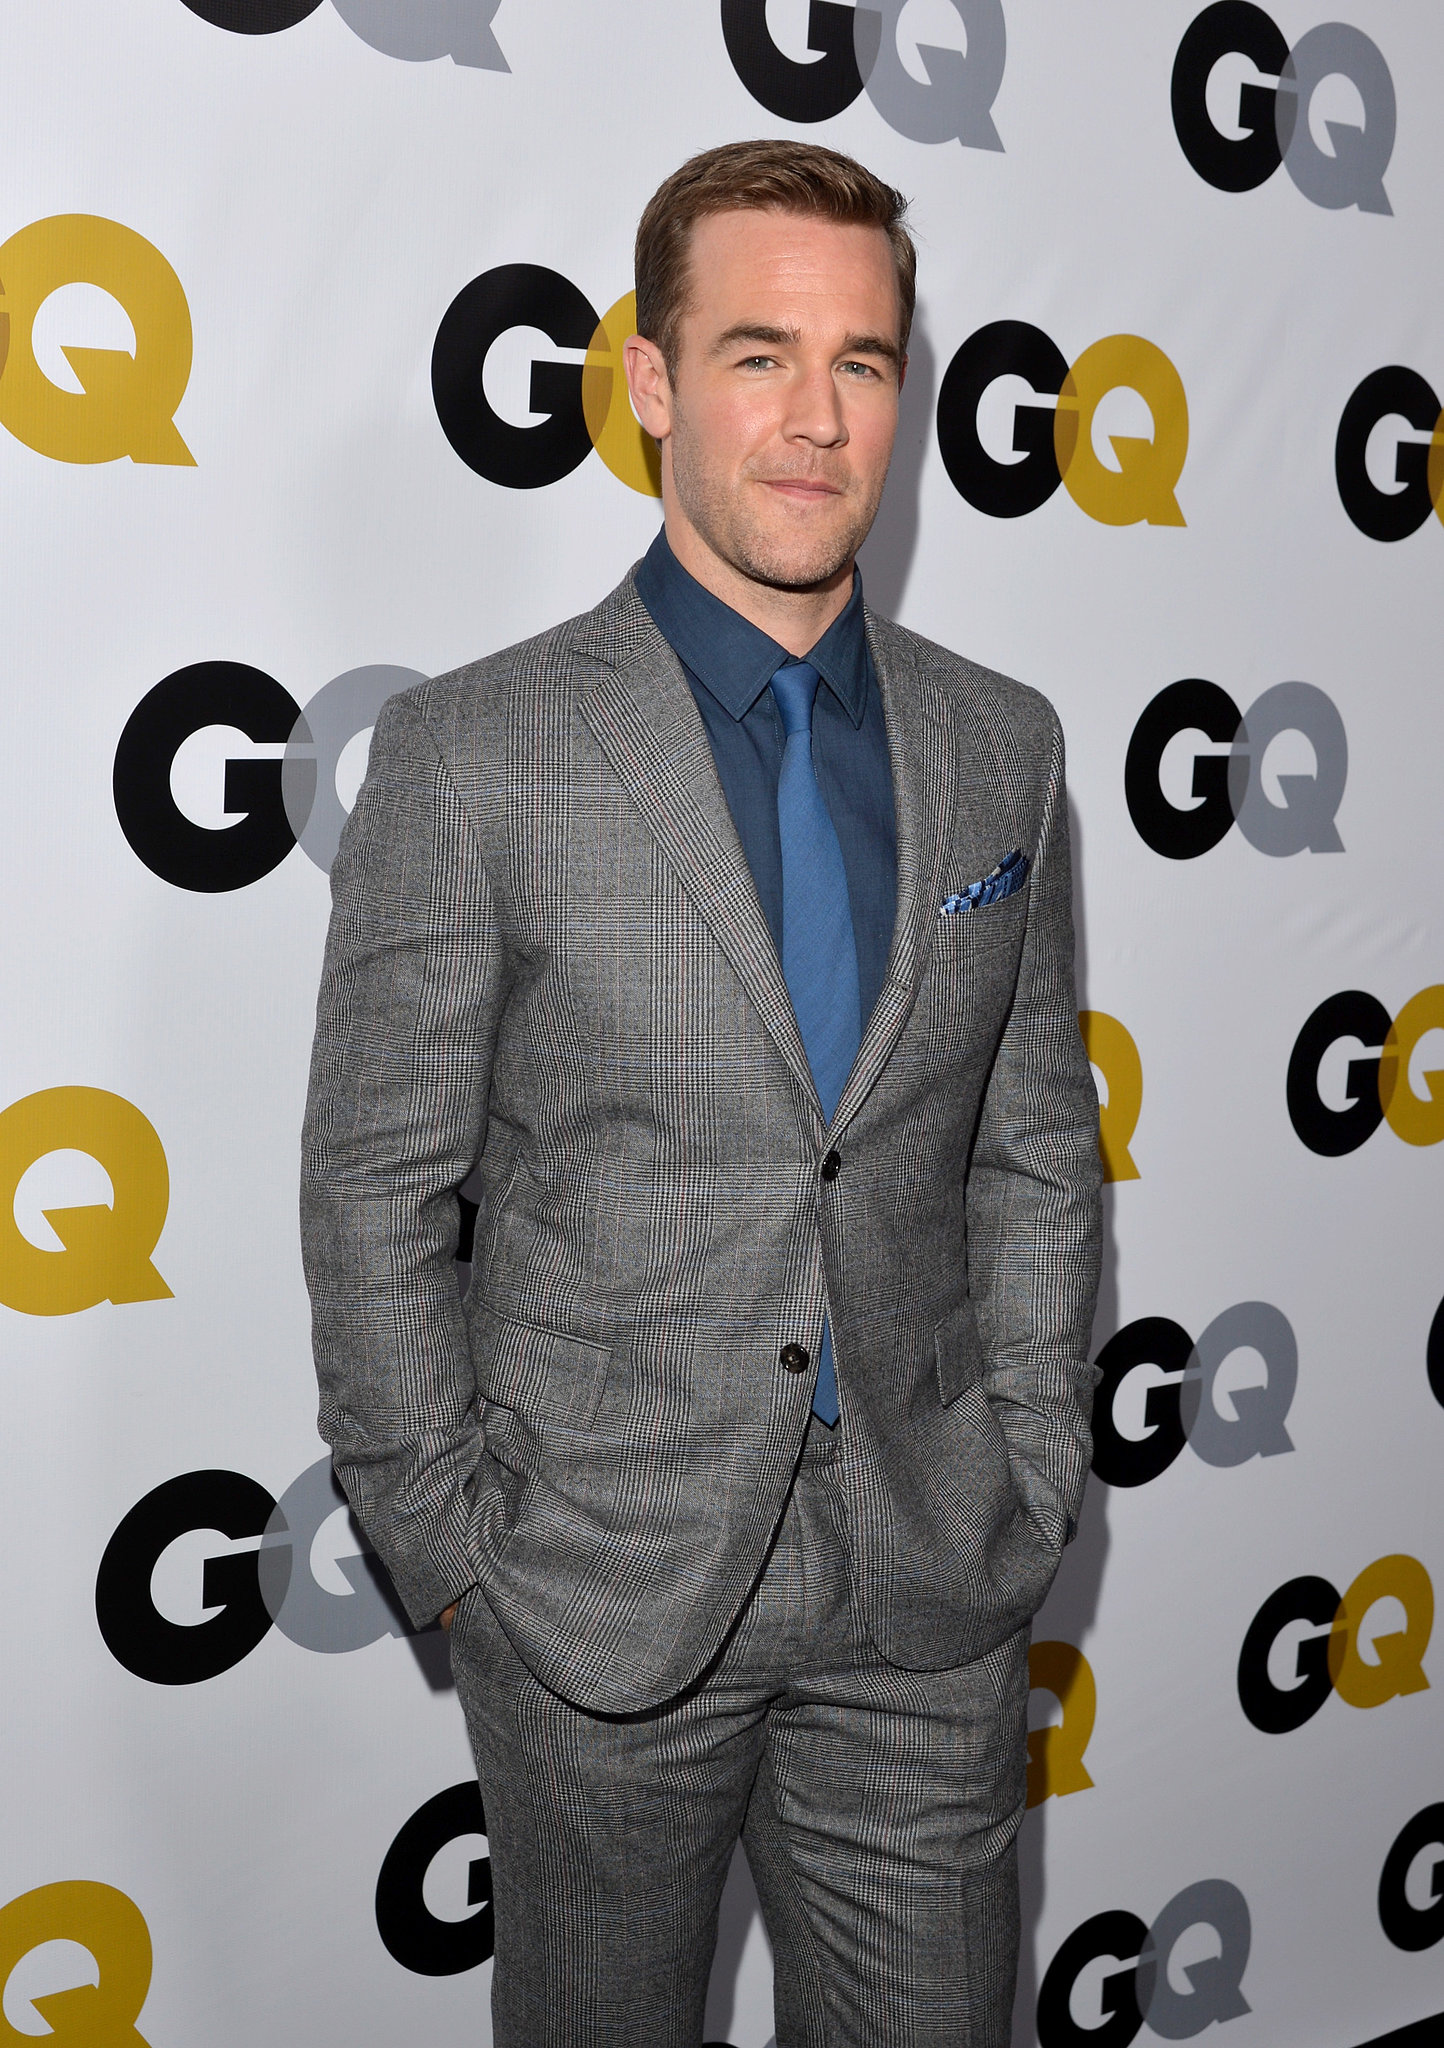 James Van Der Beek suited up the event.